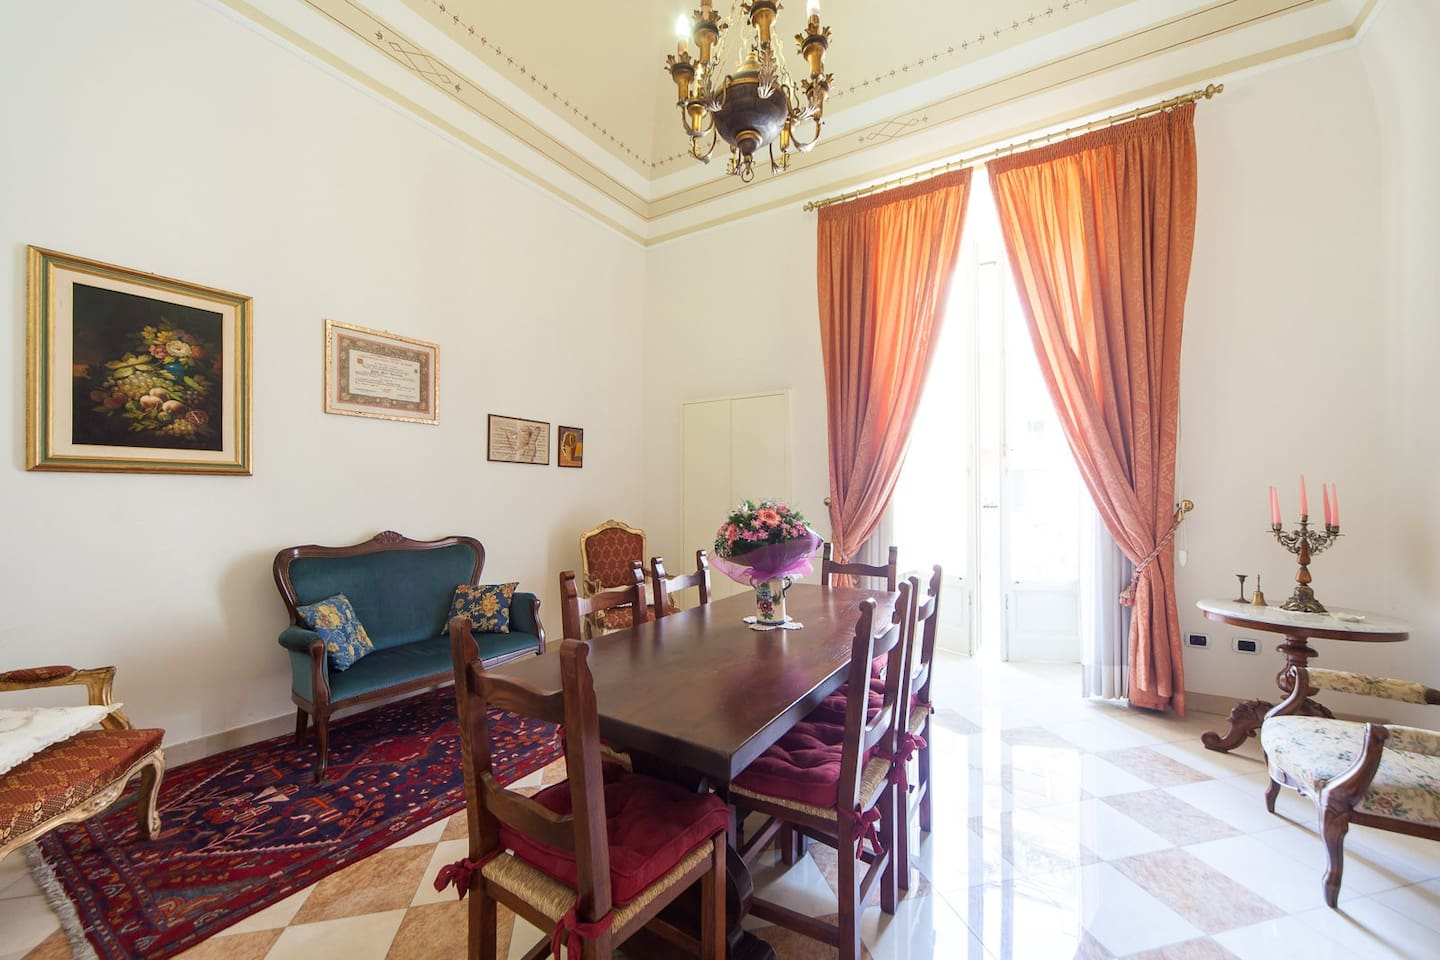 RELAIS DELLA CONTESSA - Houses for Rent in Bari, Apulia, Italy